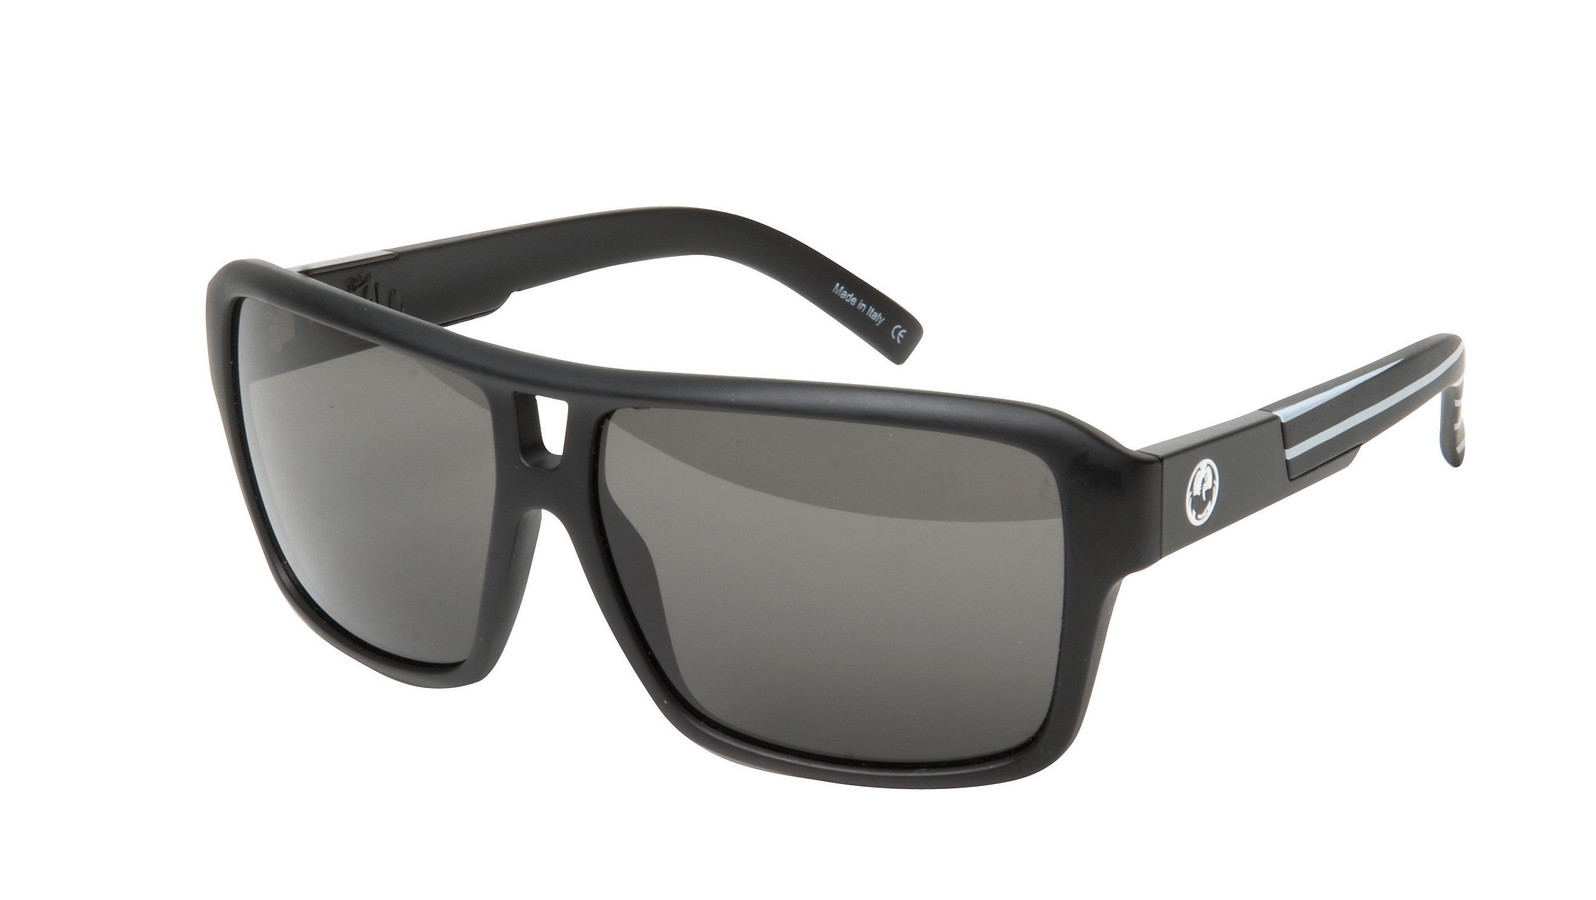 Dragon The Jam Shawn Watson Sunglasses Grey  dragon-thejam-sngls-shawnwatsongry-10.jpg